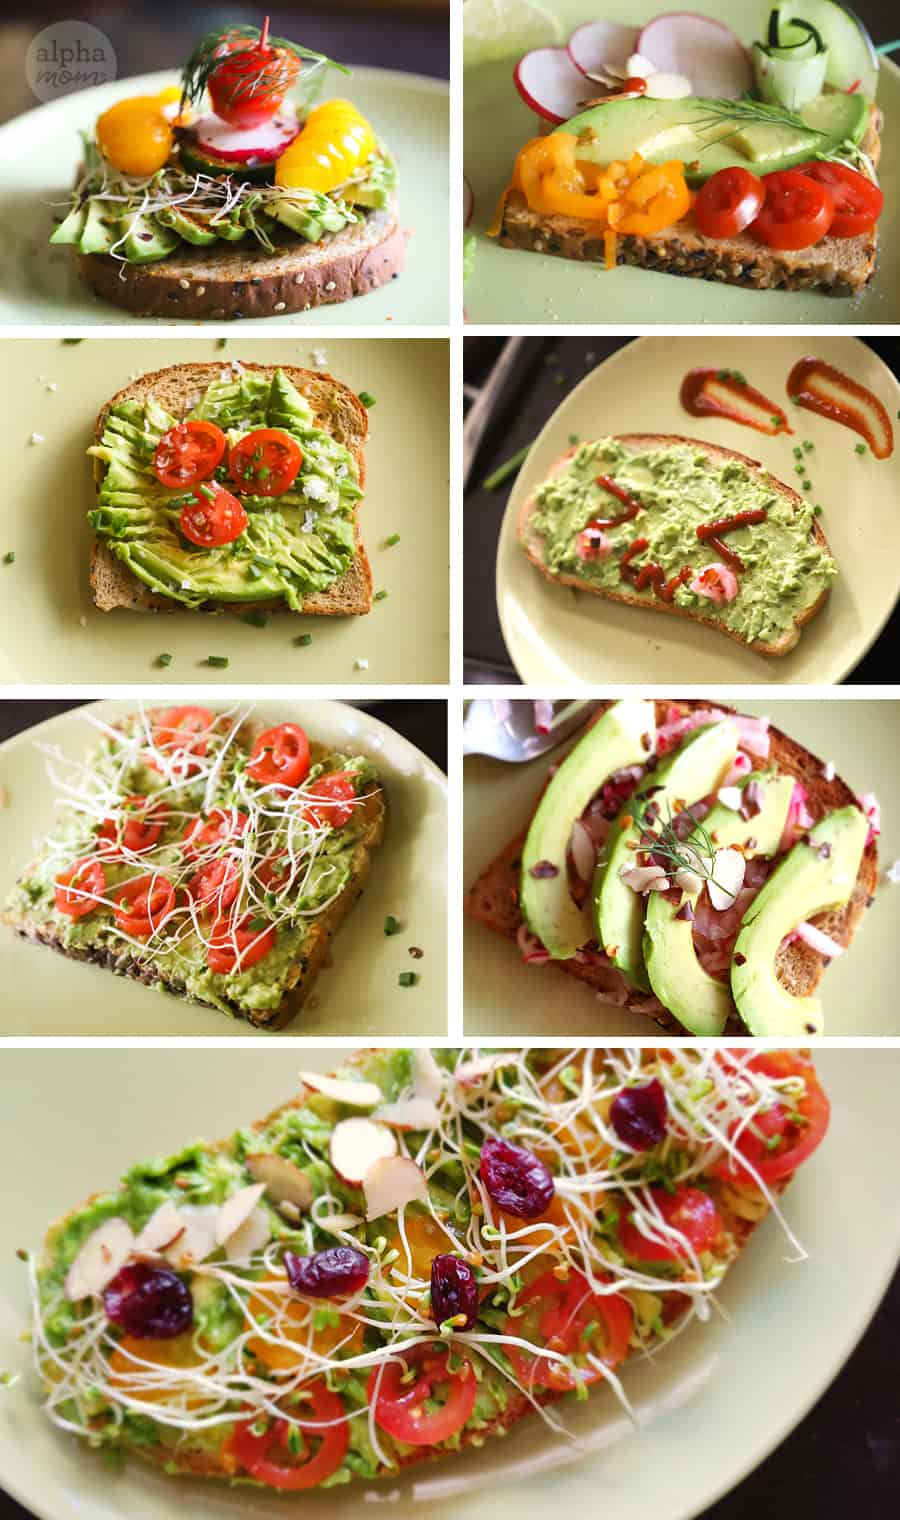 gallery of seven photos of different examples of avocado toast with different food toppings